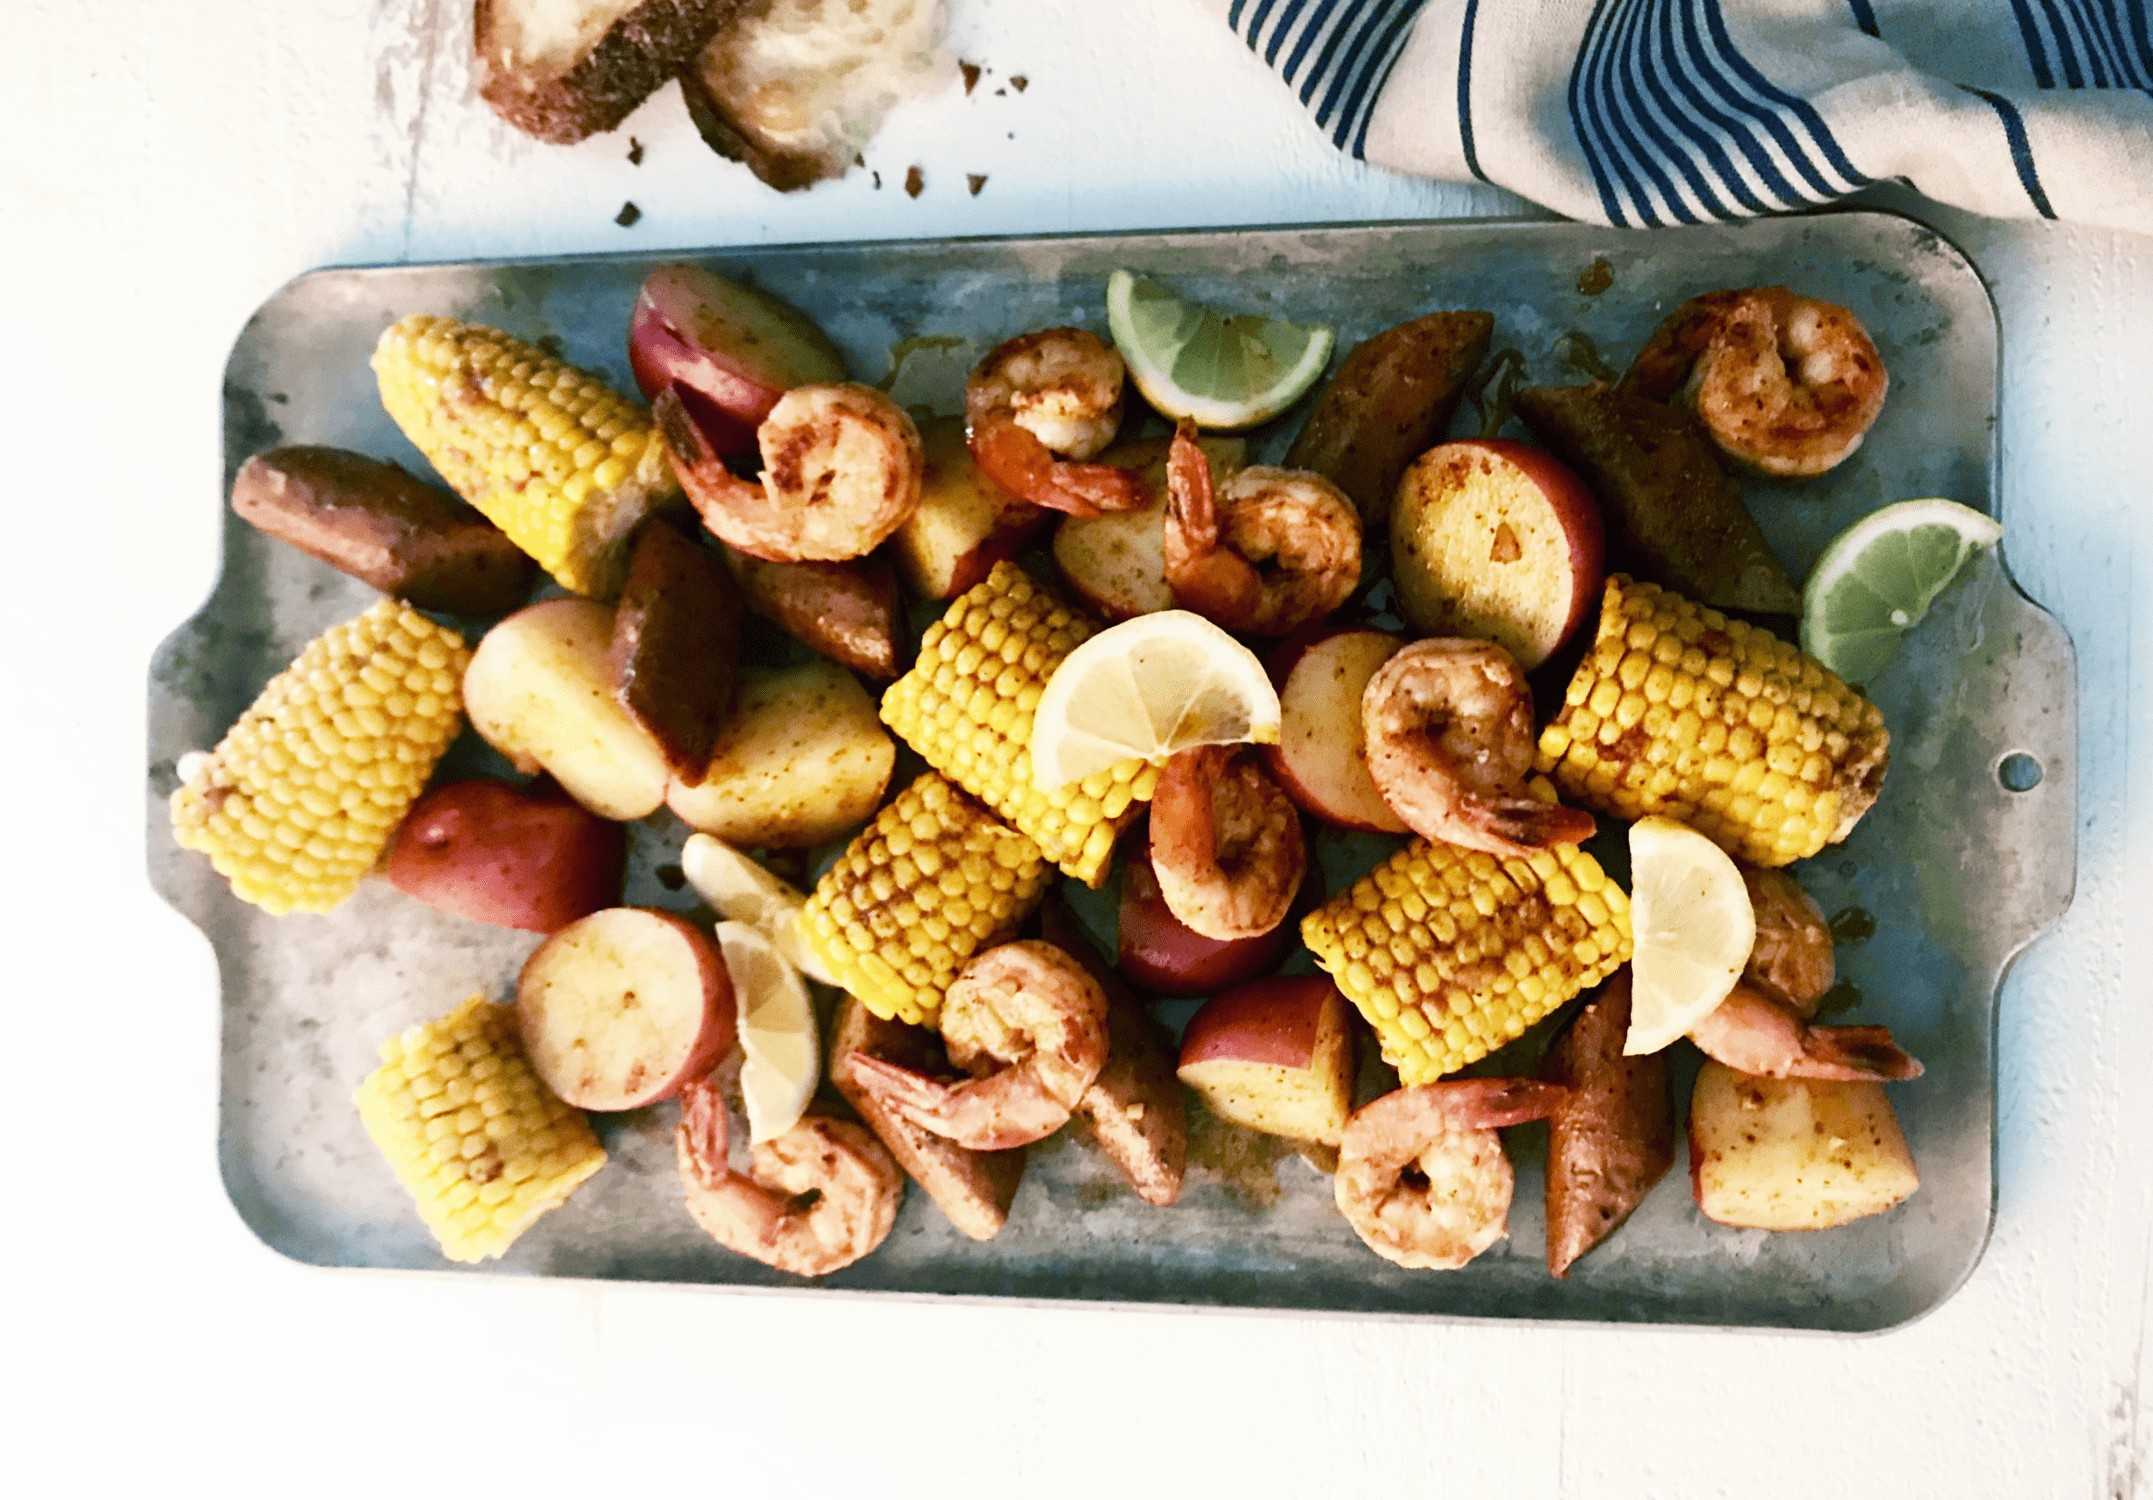 Cajun shrimp and sausage boil